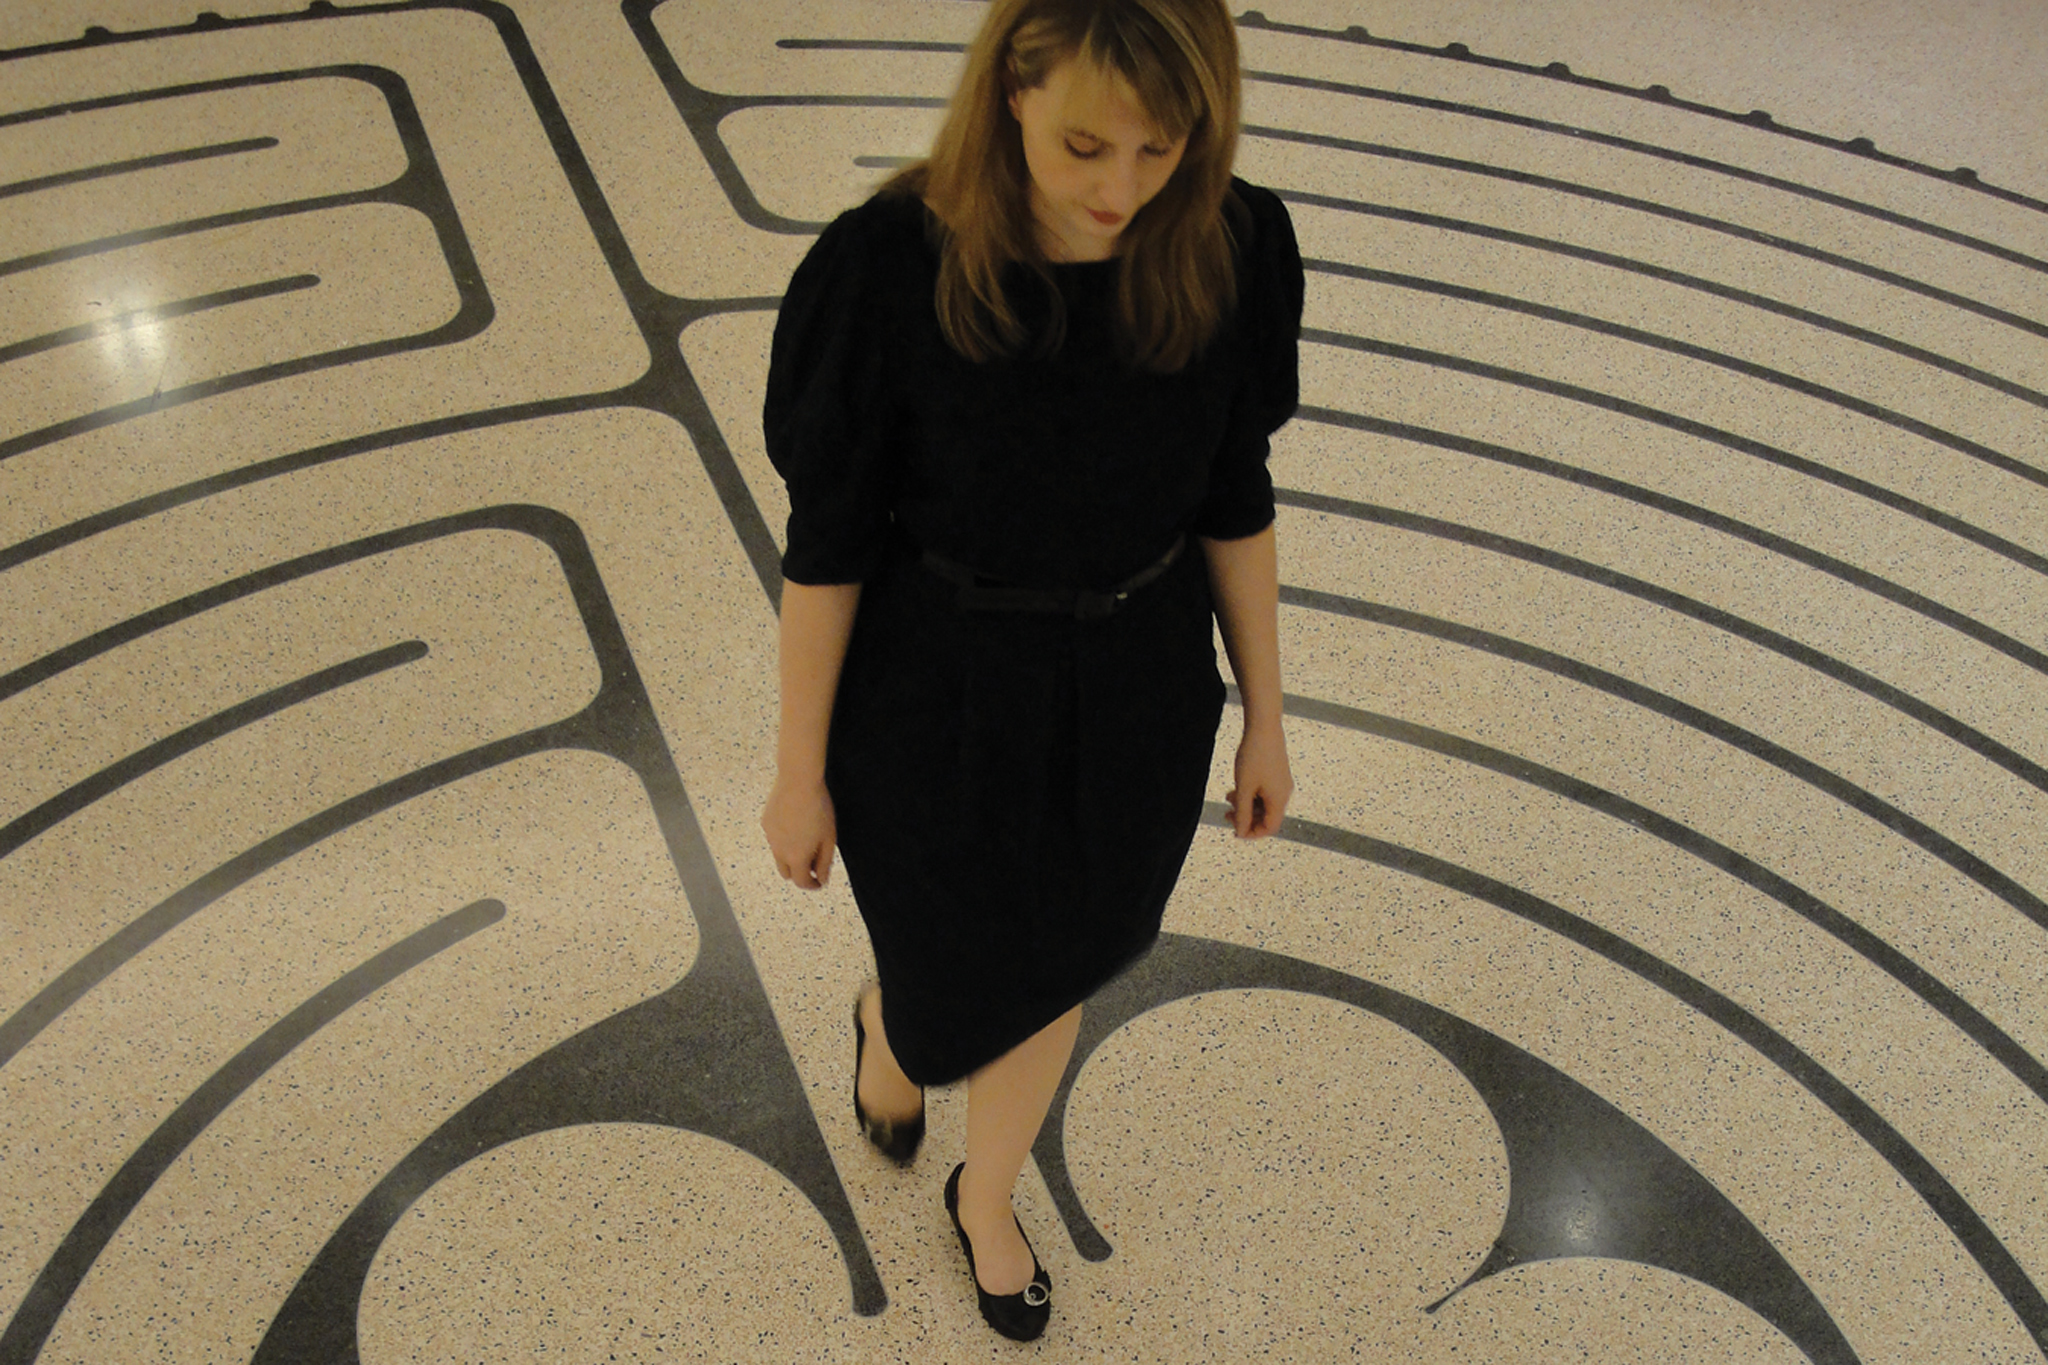 The Labyrinth at Marble Collegiate Church